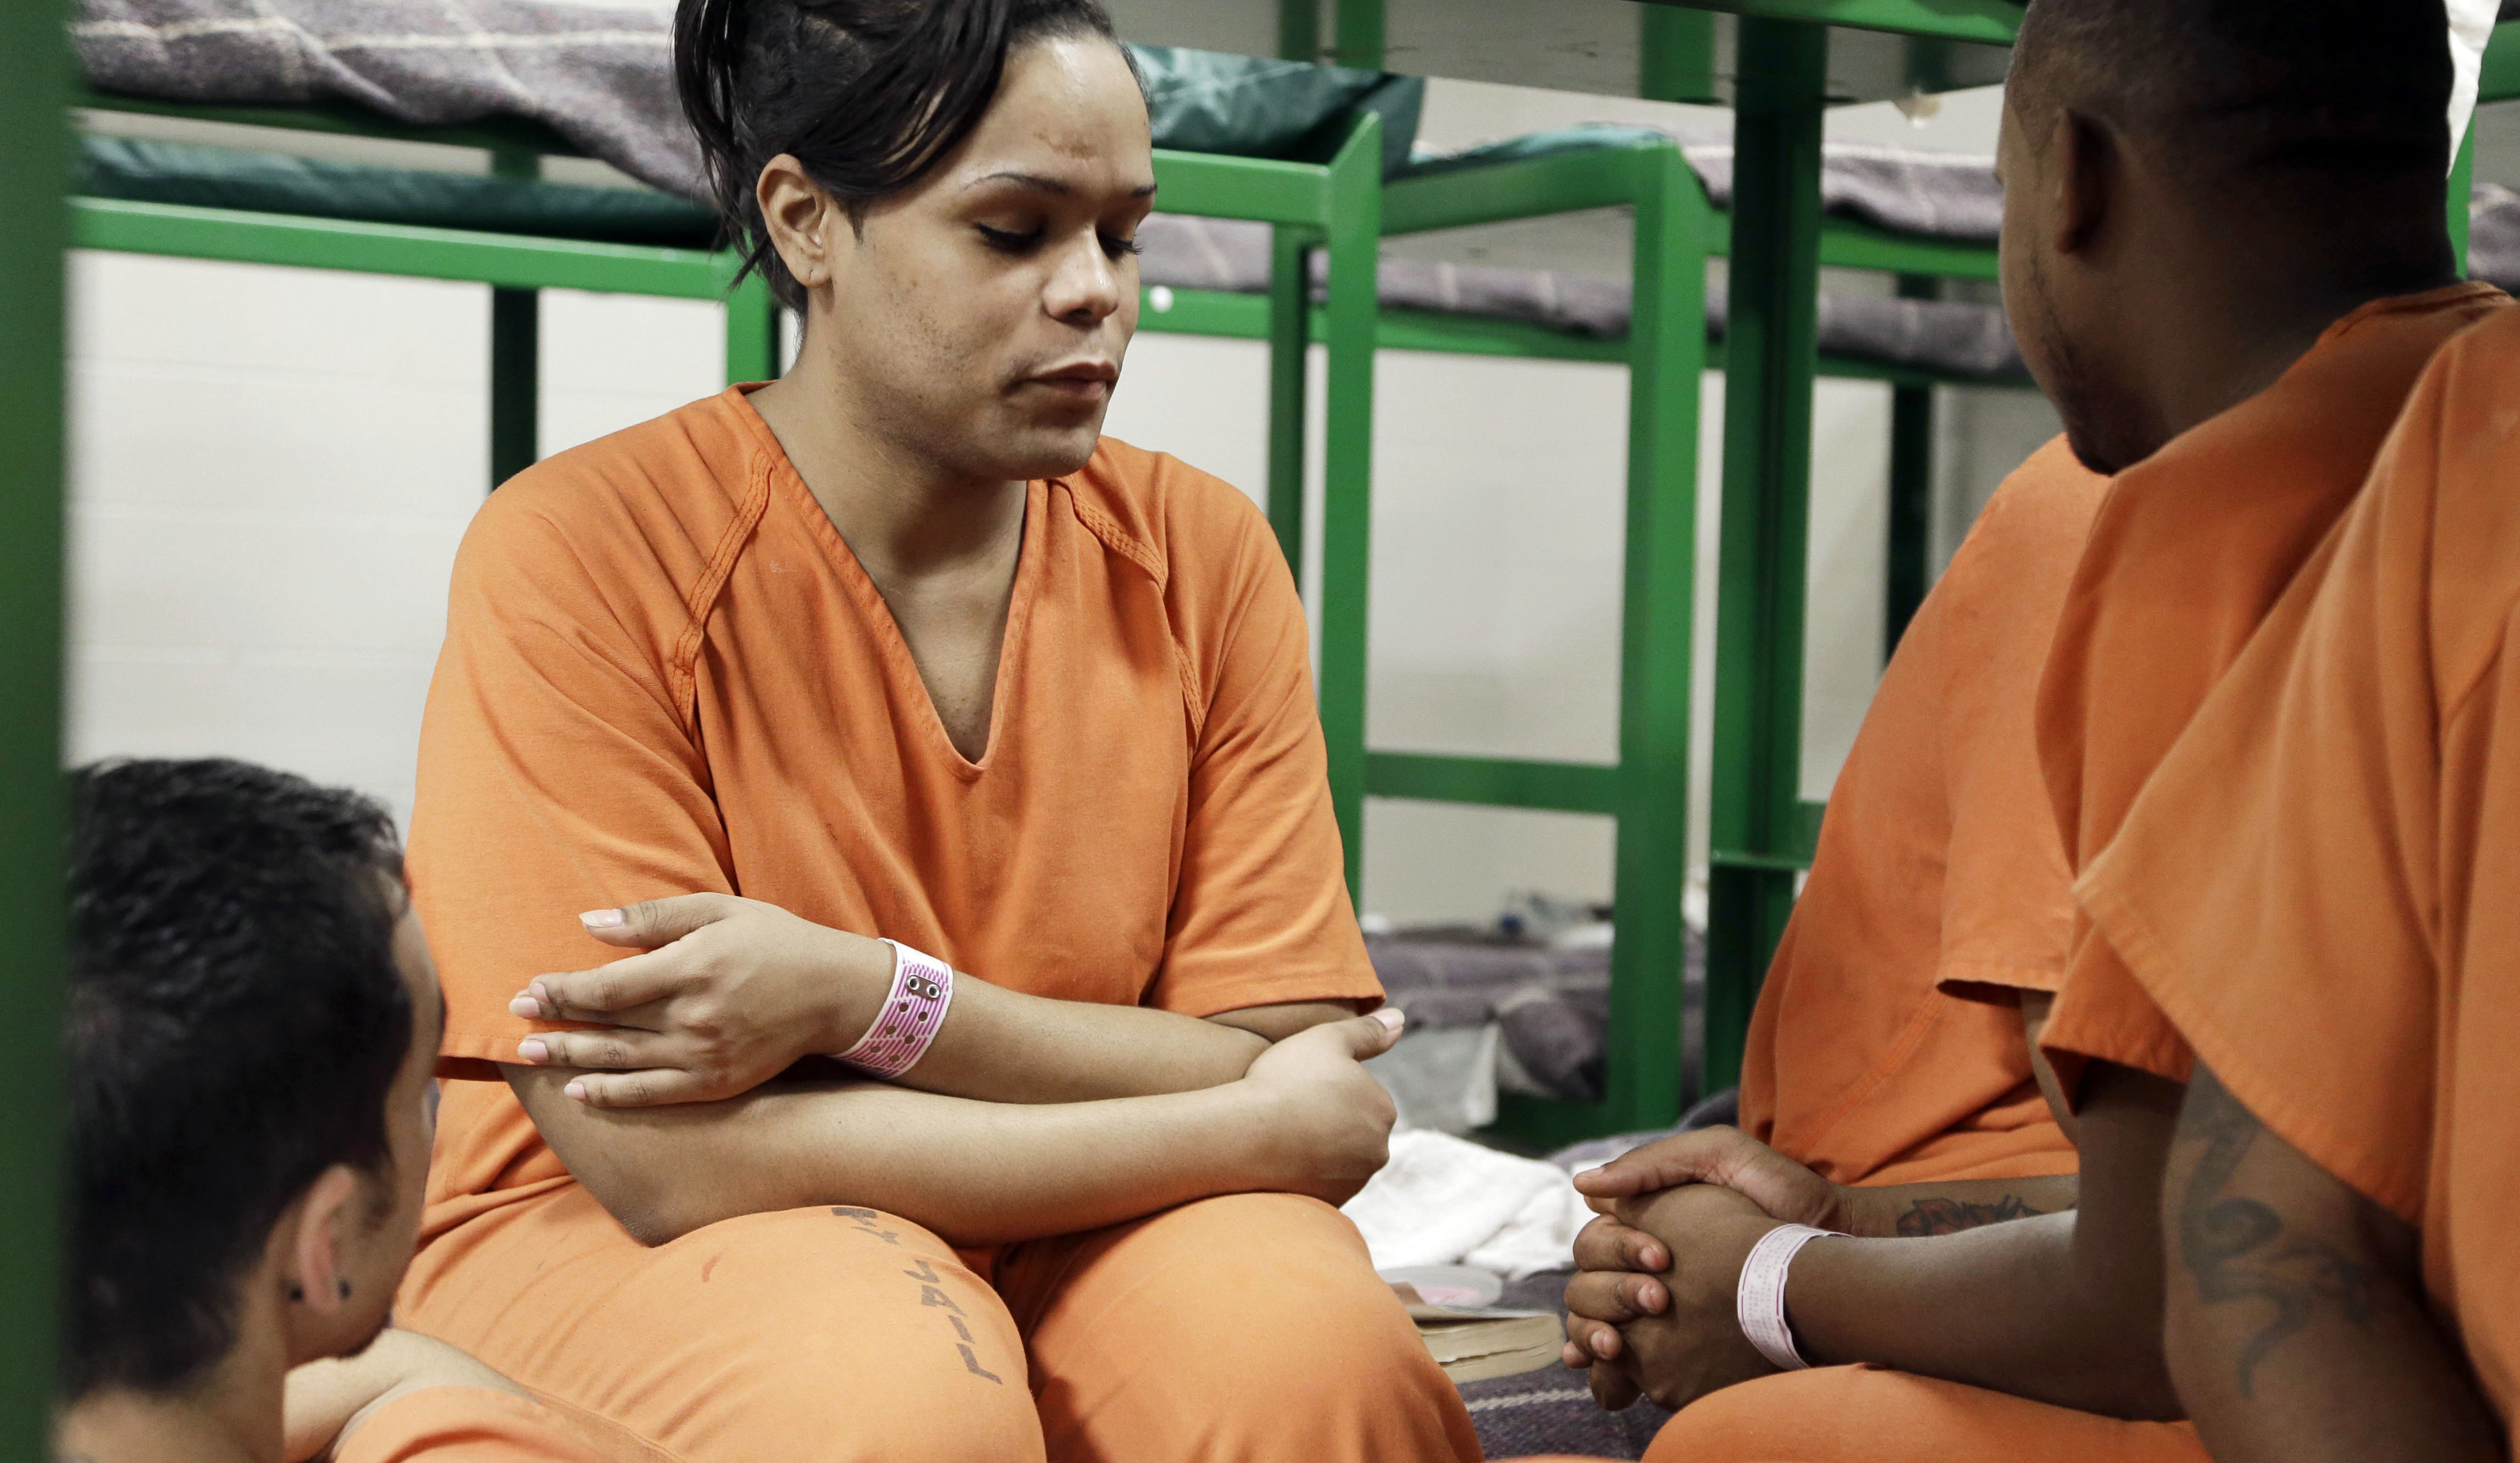 Tyniehsa Stephens visits with cell mates in the Harris County Jail in Houston, one of many jails around the country implementing changes in the way it treats its LGBT population.